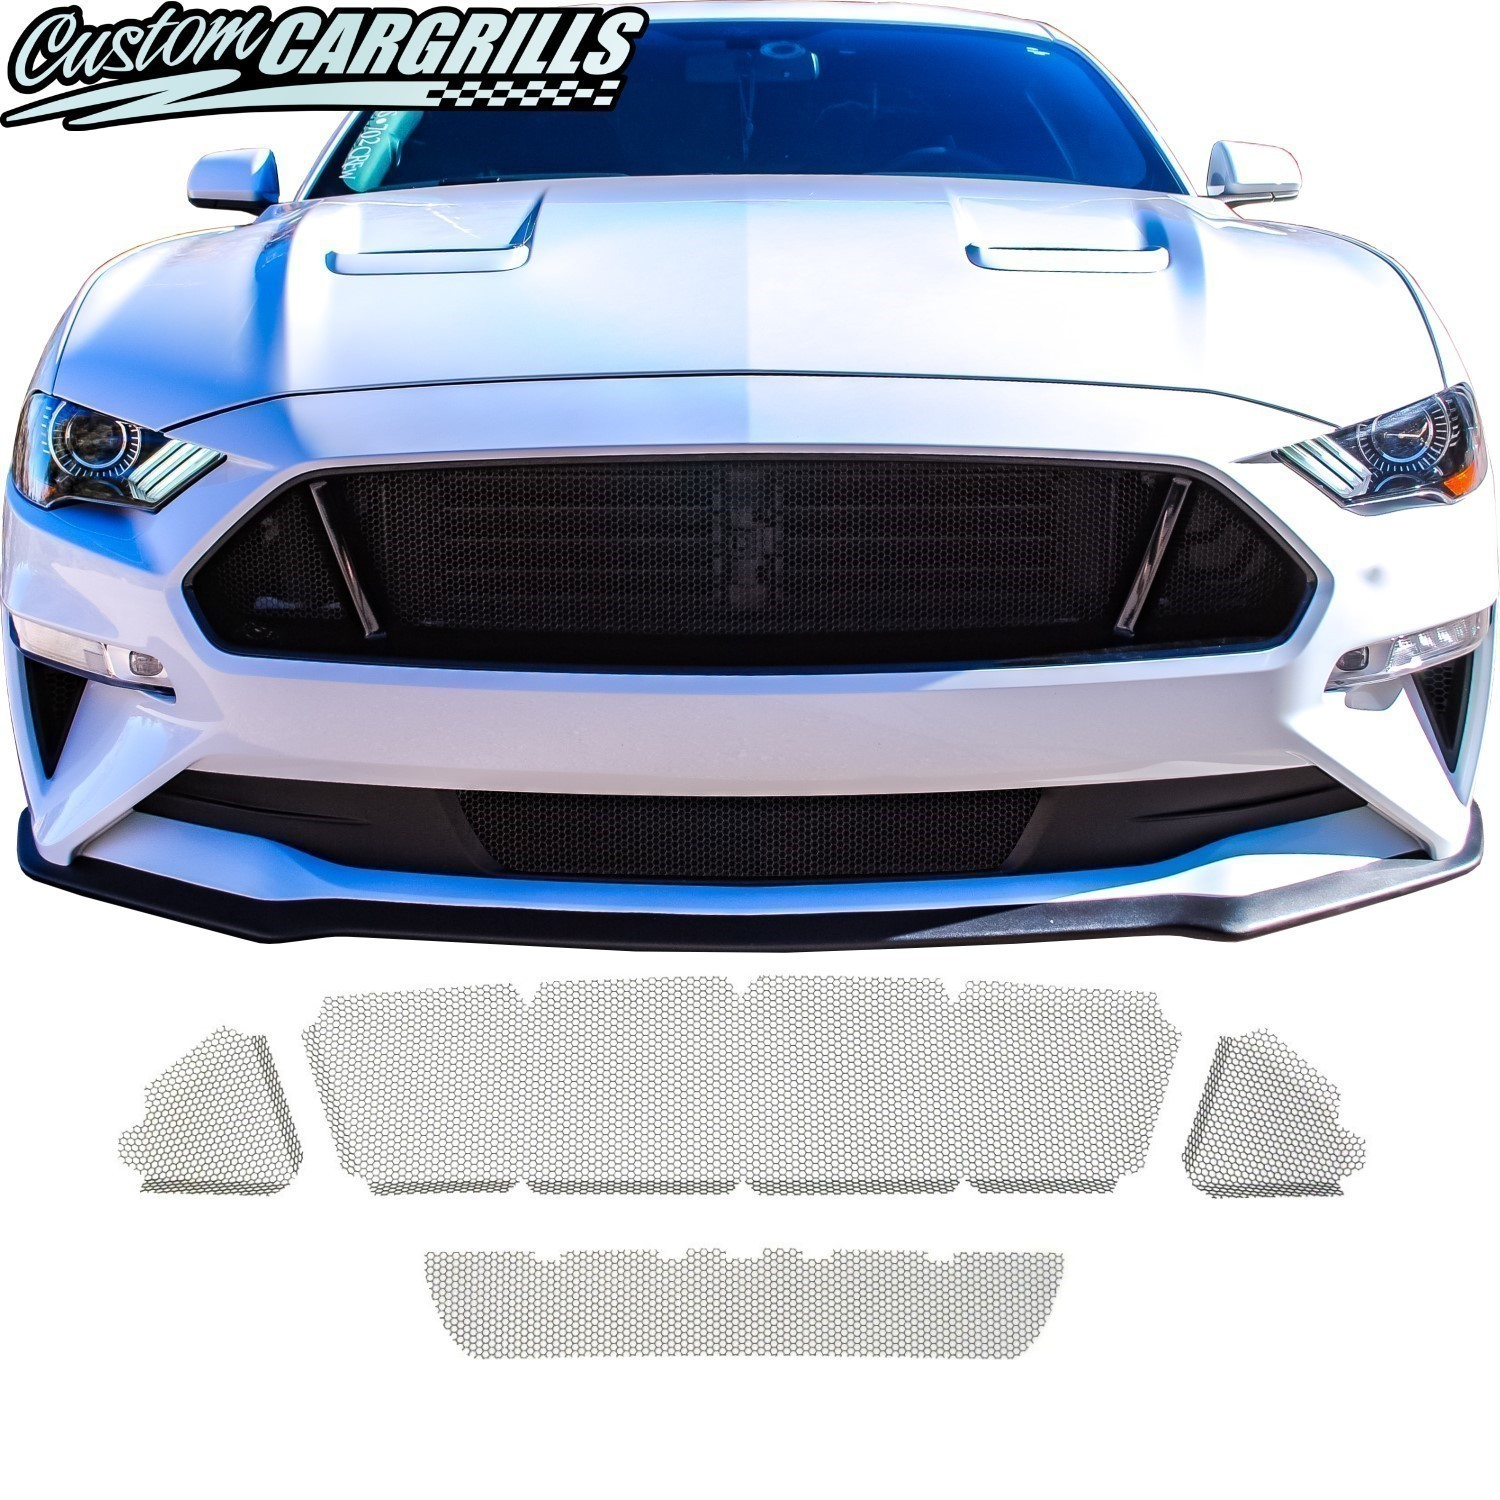 Honeycomb Mesh Grill Kit for 2018 - 2020 Ford Mustang GT